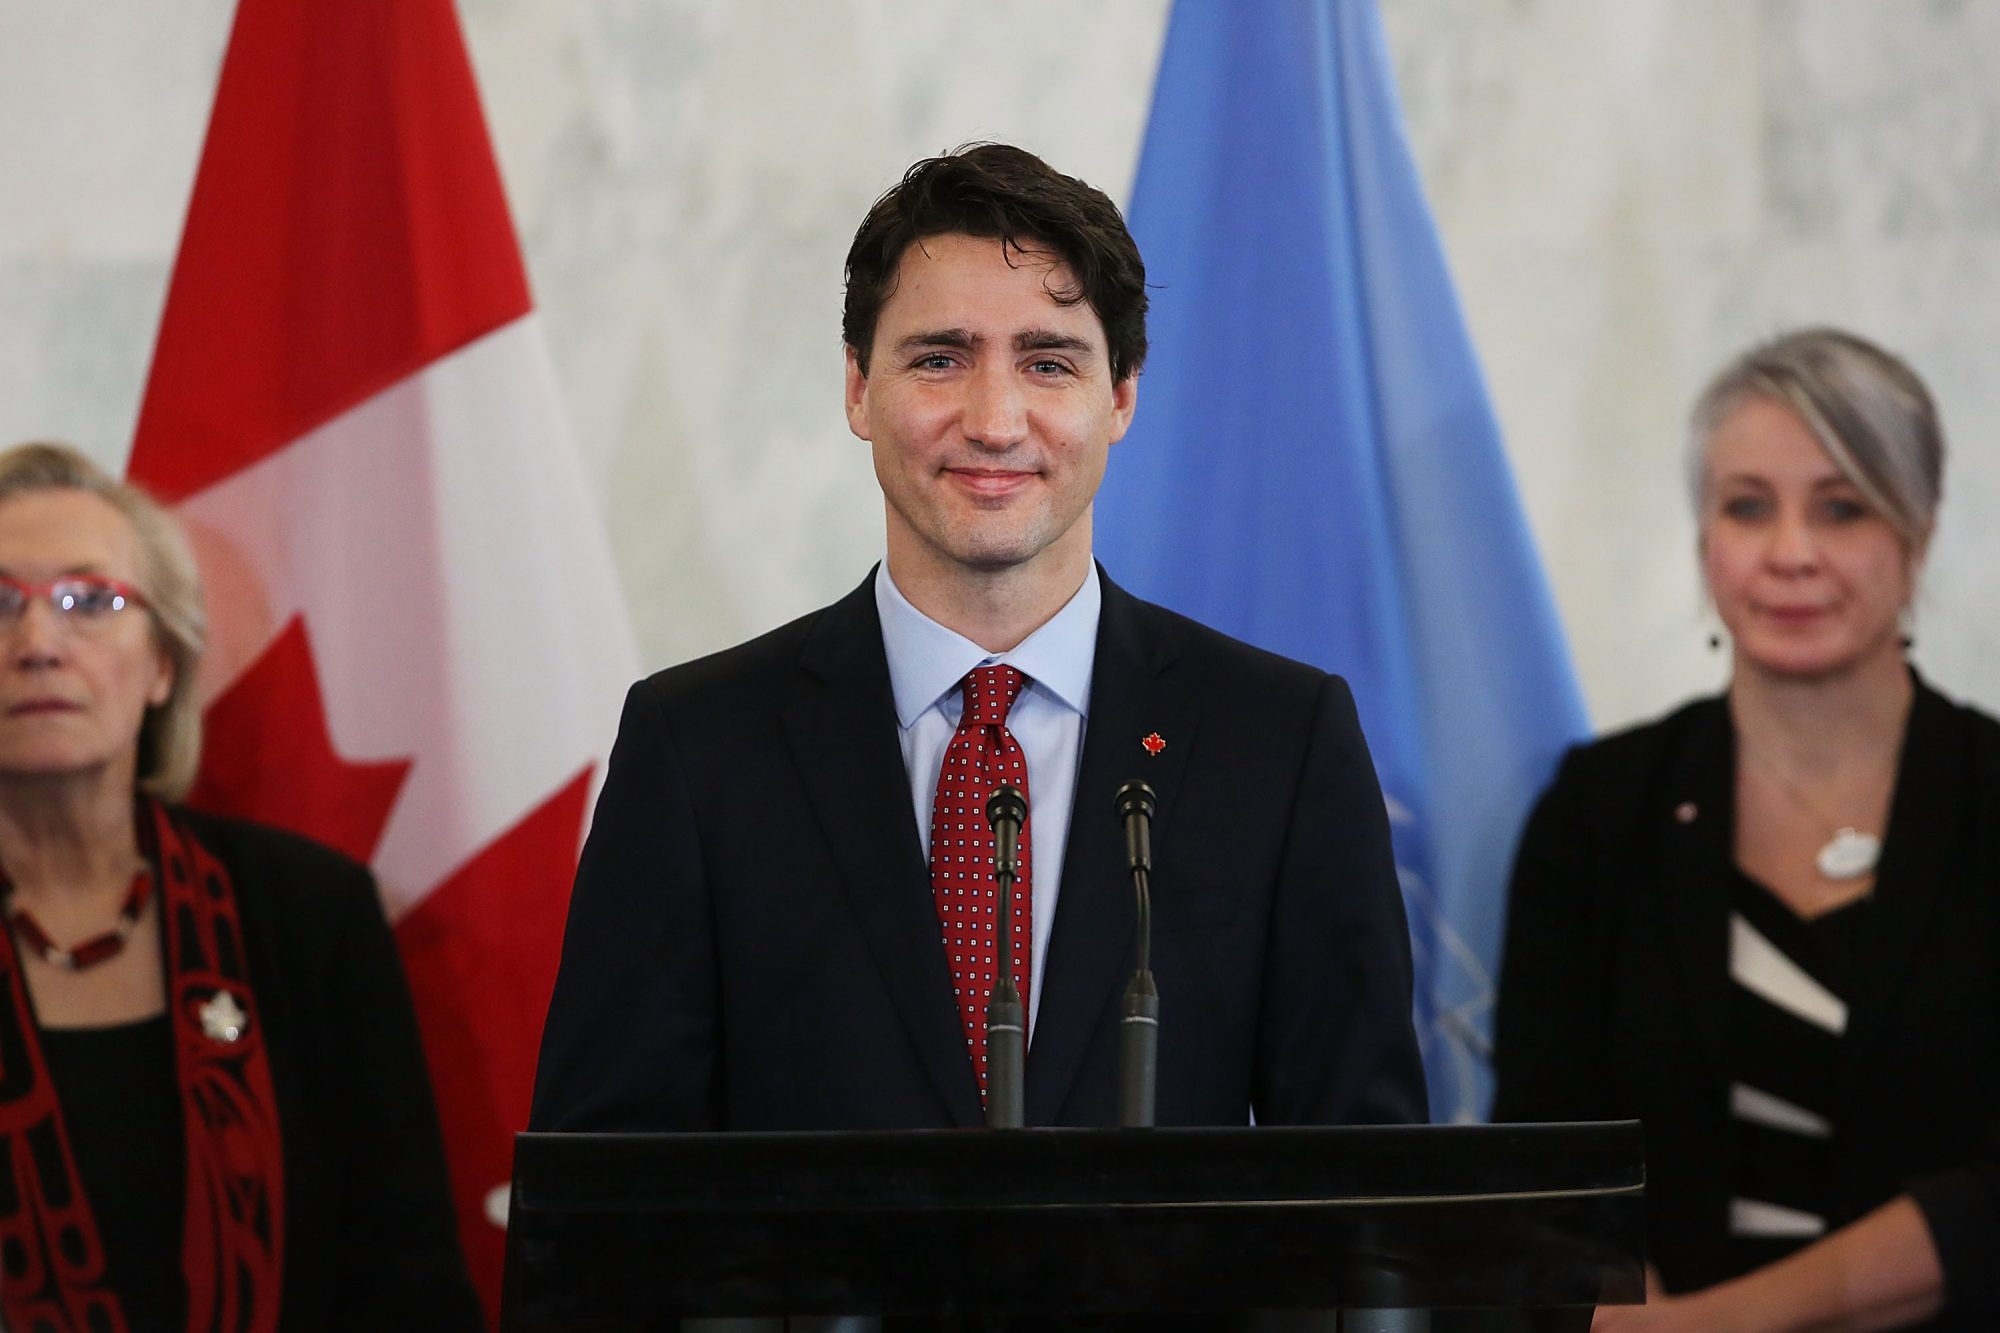 Canadian Prime Minister Justin Trudeau Speaks To The Press At The United Nations